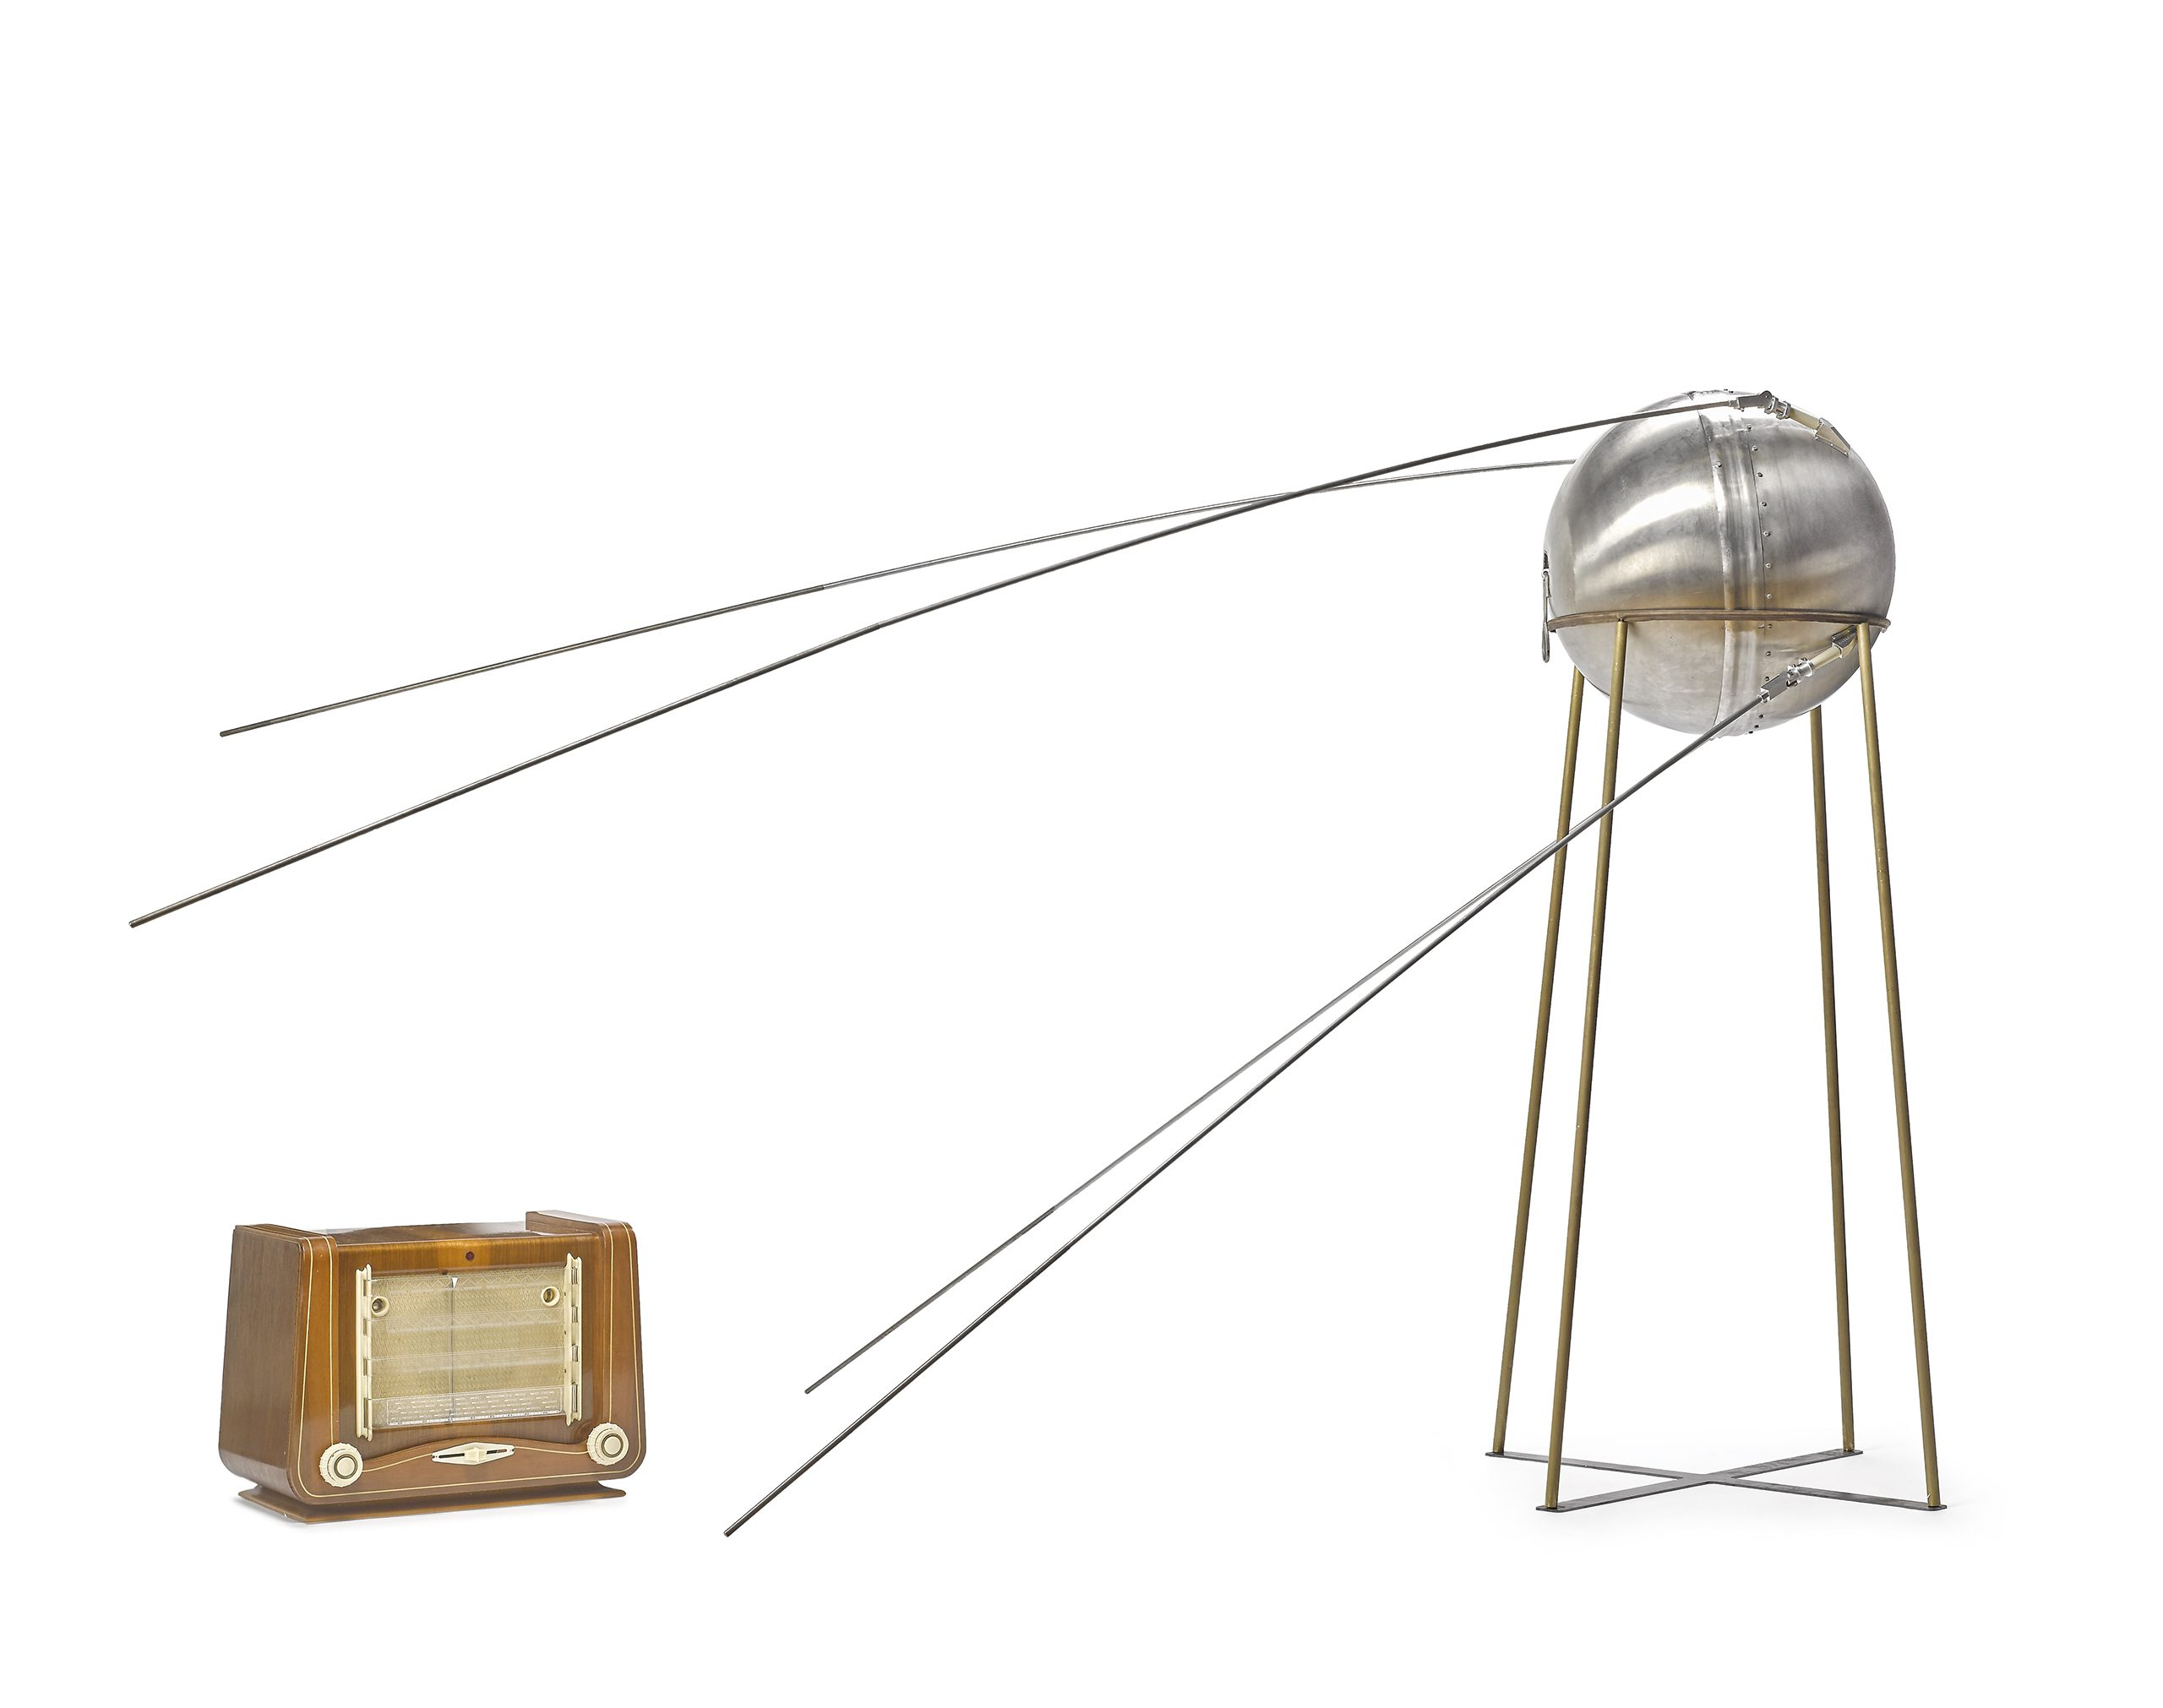 A rare vintage test model of the Sputnik-1 satellite, with a still operational live transmitter (just provide your own 12v battery!).                                                              New York auction house, Bonhams, is offering up a number of rare space artifacts from Apollo 11 and Soyuz missions on the anniversary of the moon landing, 47 years ago on July 20th, 1969. Items up for auction include astronaut training equipment, spacesuits, original documents signed by Buzz Aldrin, full size models of satellites, navigation aids used in space, and photographic prints of fascinating moments in space exploration history.